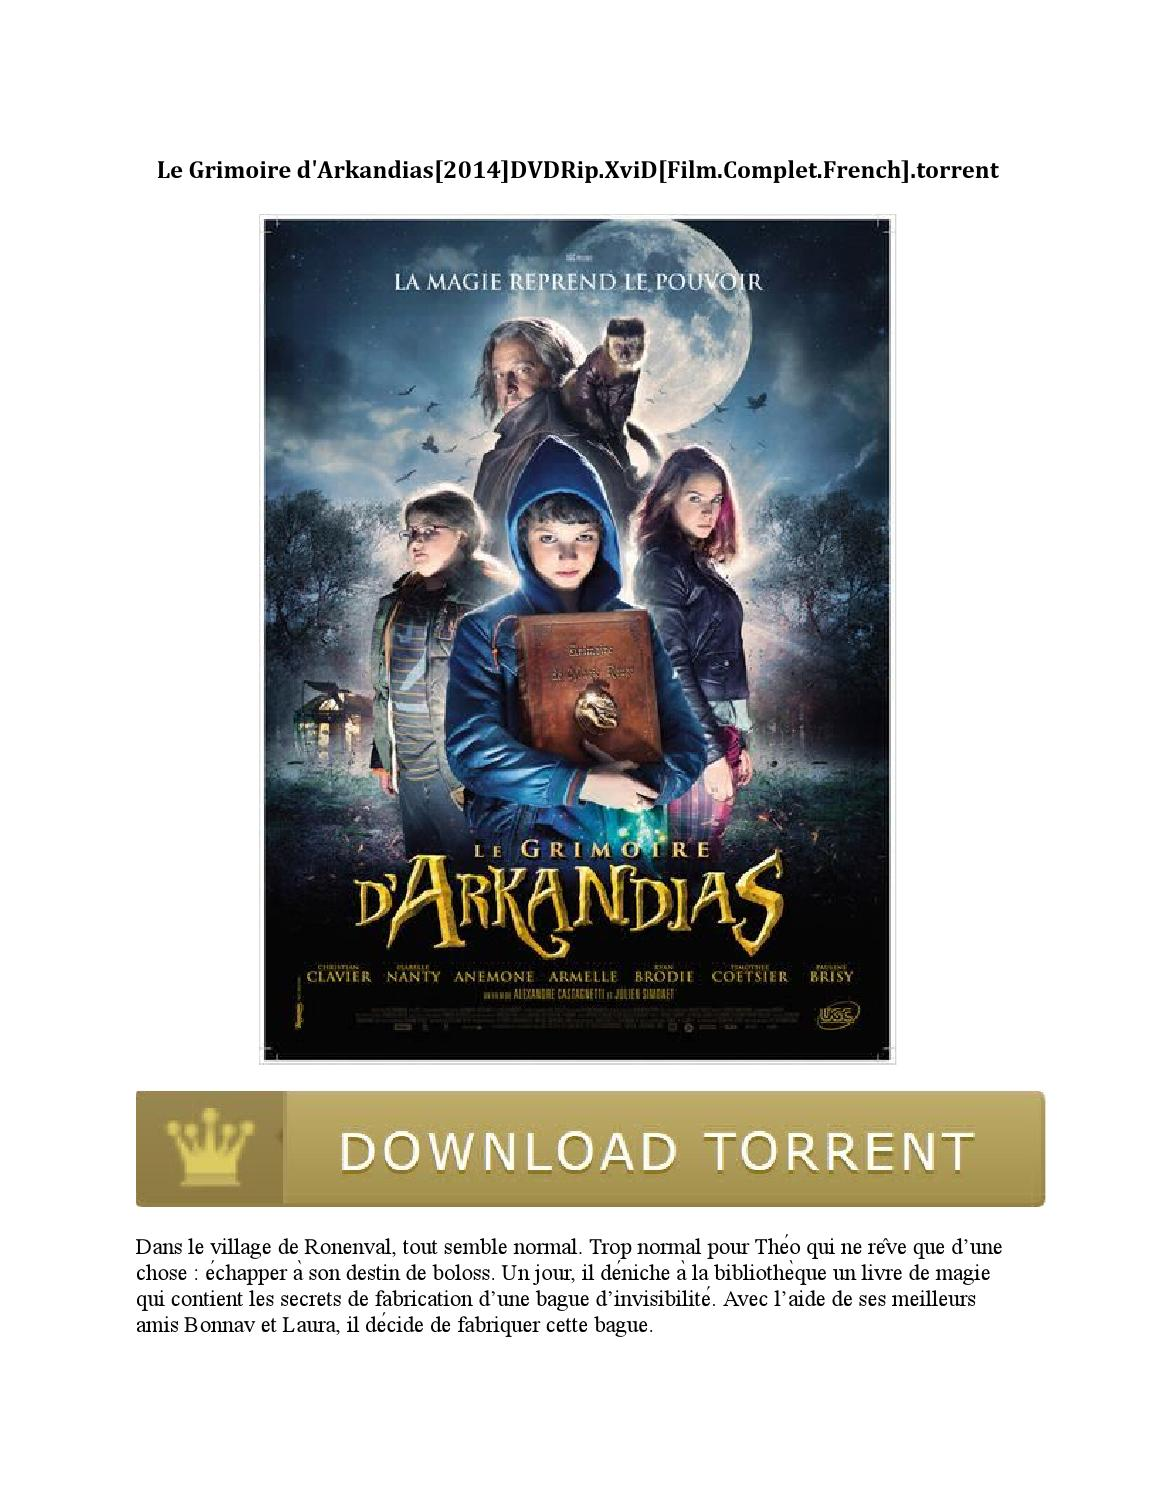 LE DVDRIP DARKANDIAS TÉLÉCHARGER GRIMOIRE